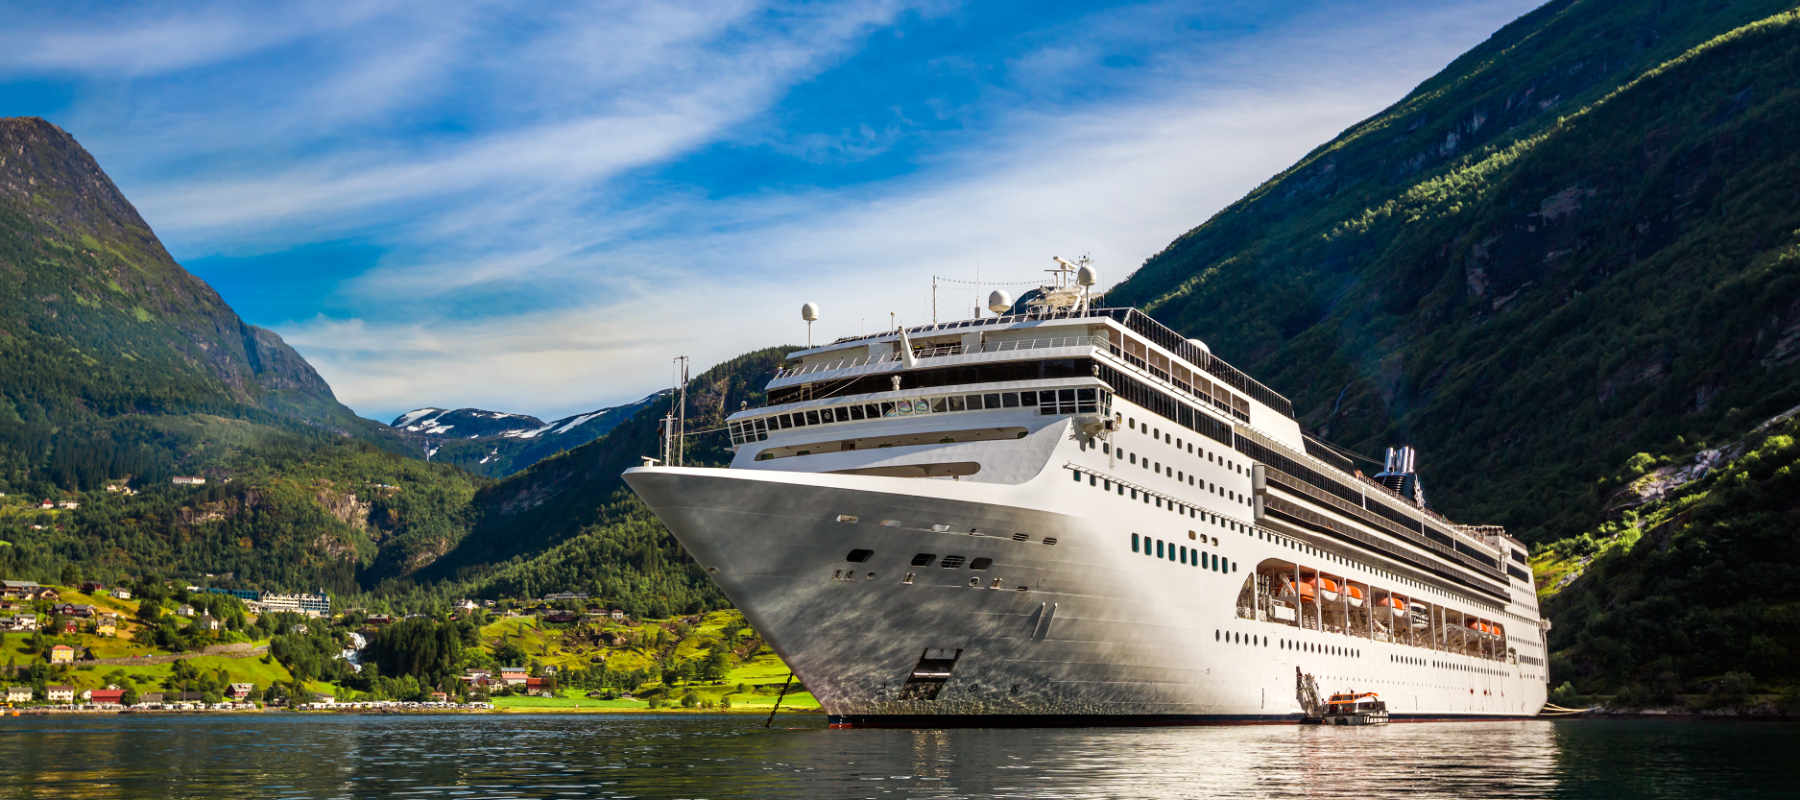 Image of a cruise liner on a fjord as concept for wise living over 50s cruising guides - from Mediterranean cruises to getting cheap cruise deals